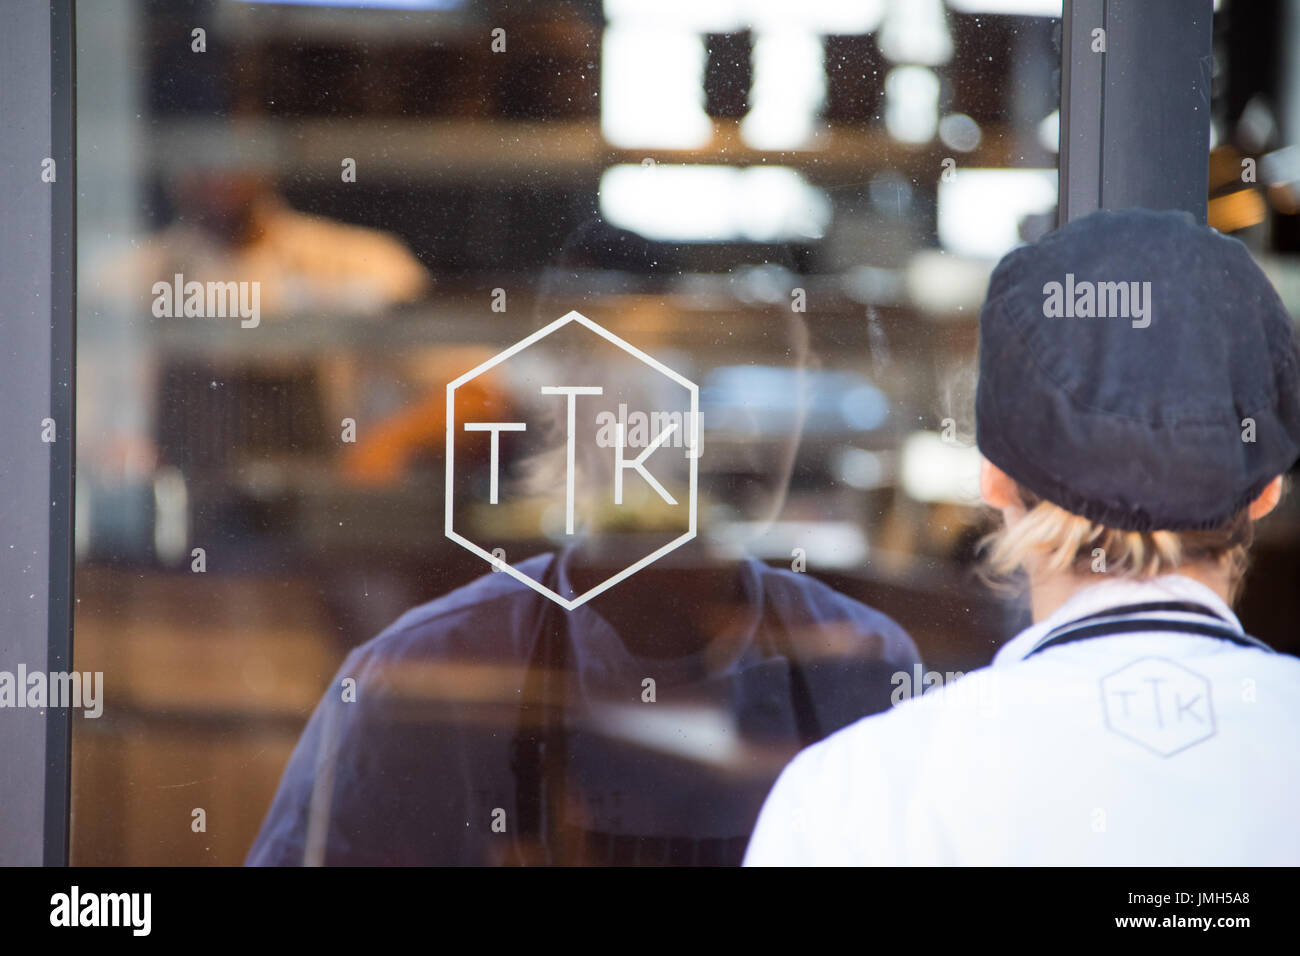 Ttk The Test Kitchen At The Old Biscuit Mill Cape Town South Africa Stock Photo Alamy